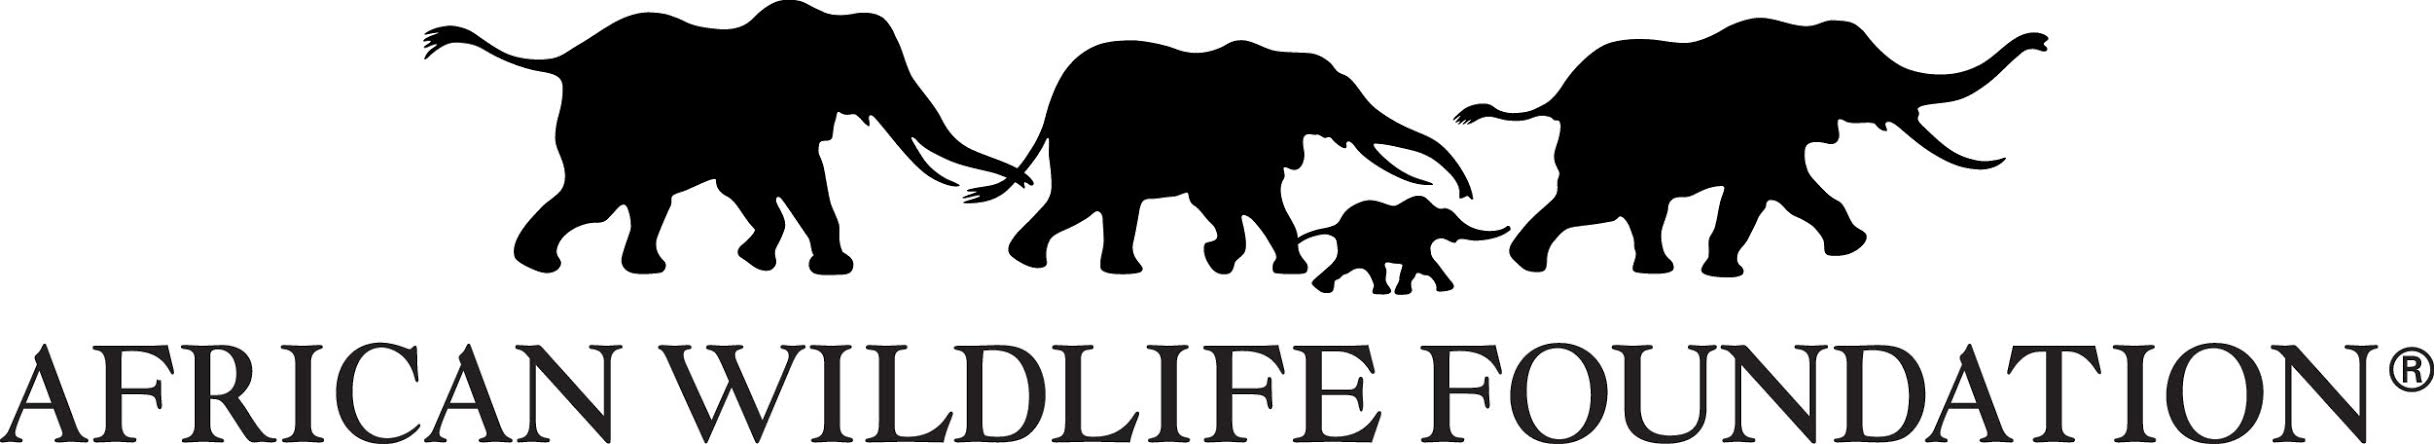 African Wildlife Foundation (AWF)  logo